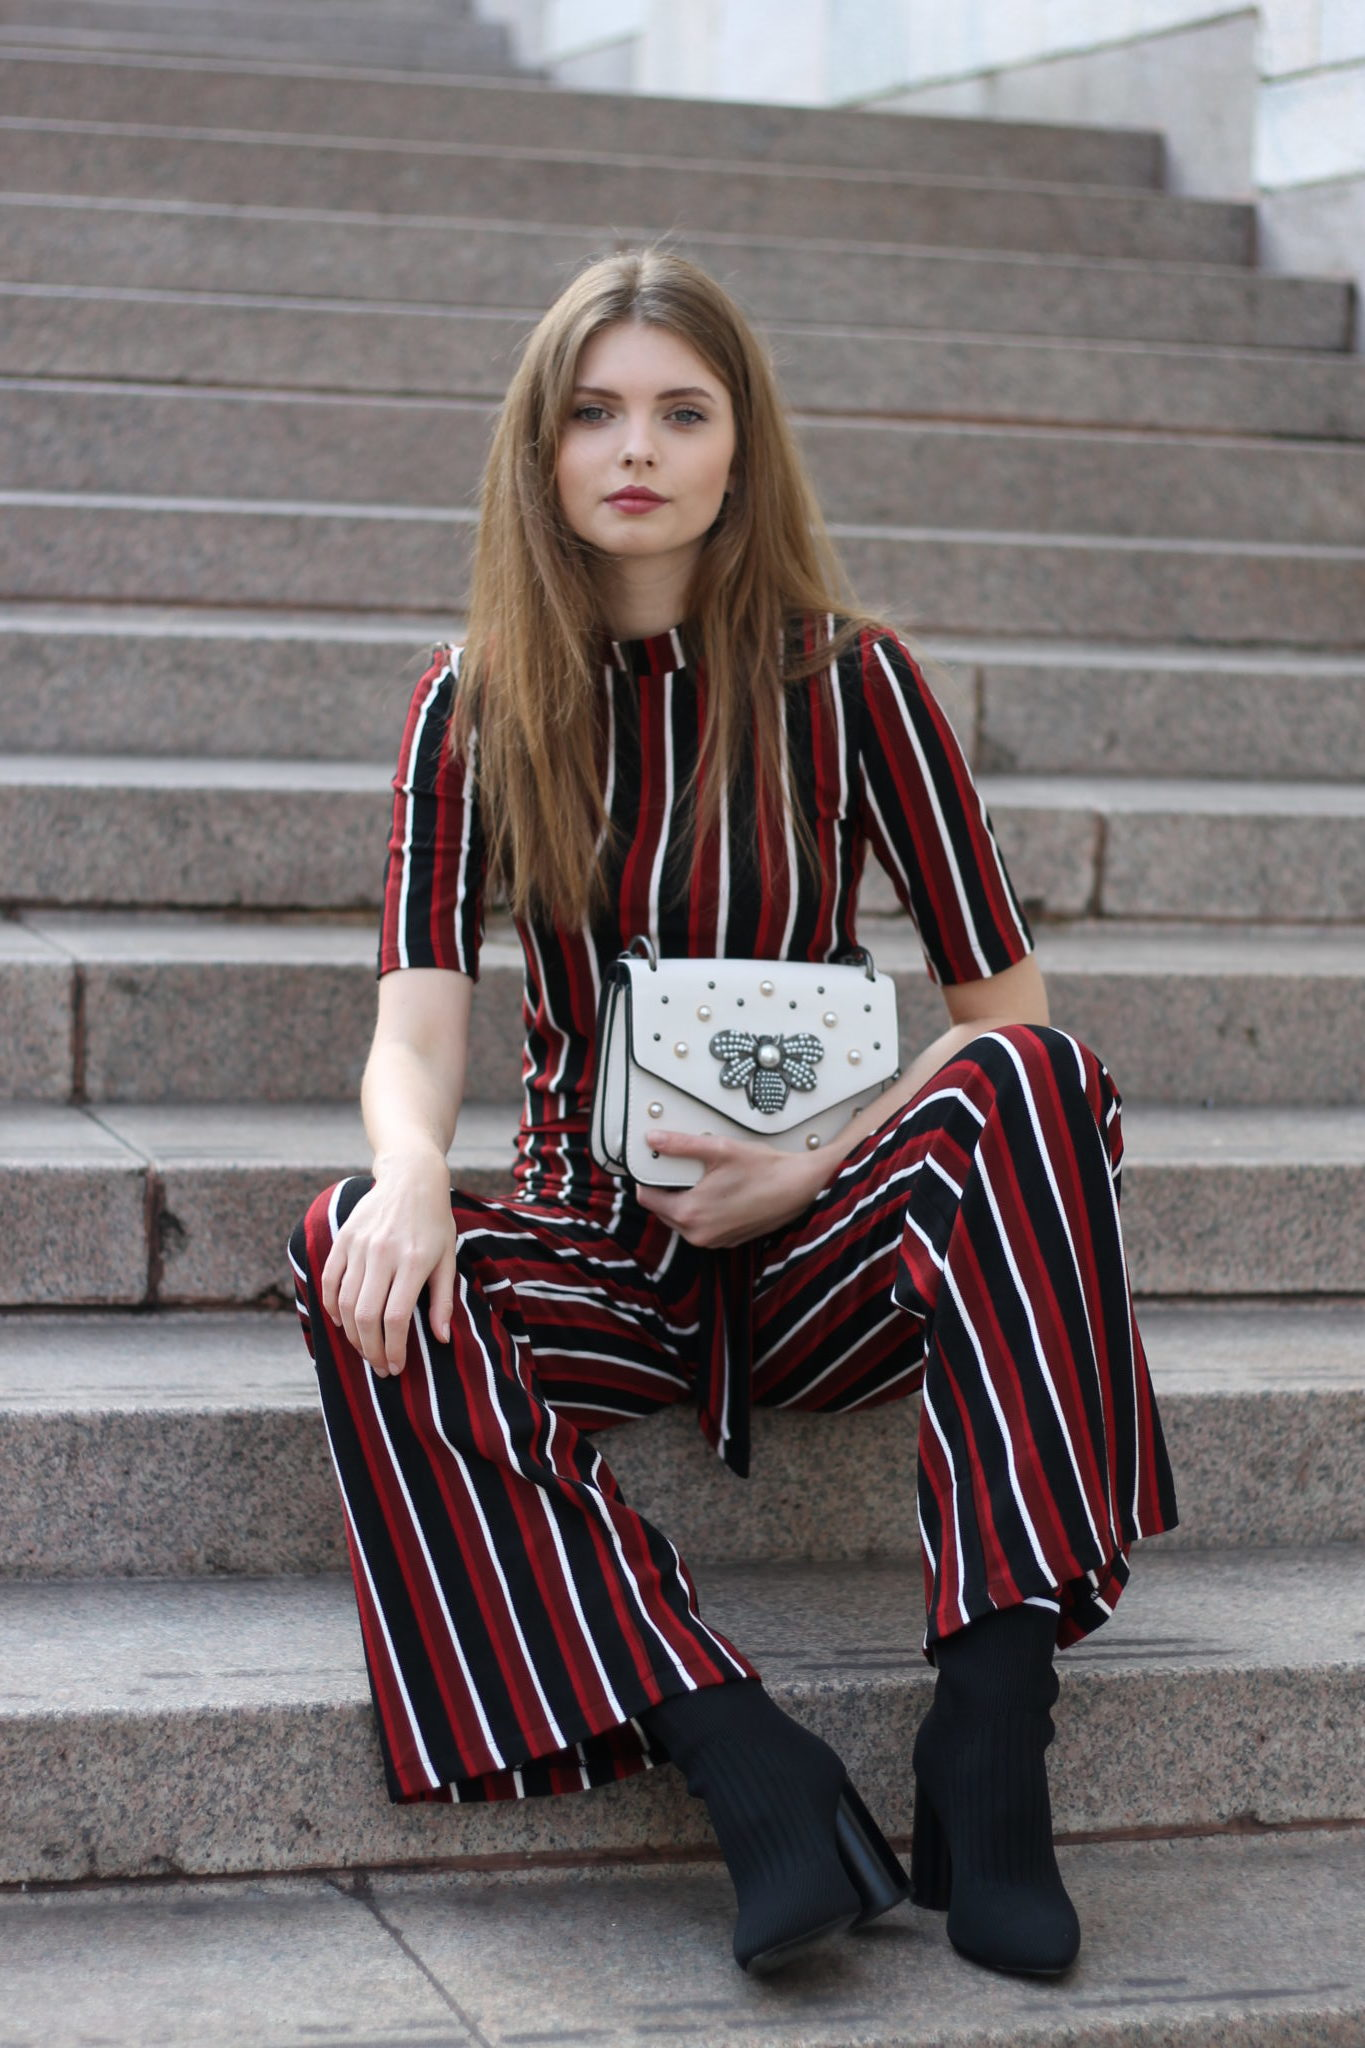 IMG 1872 e1519230615229 - BOLD STRIPED JUMPSUIT I MILAN